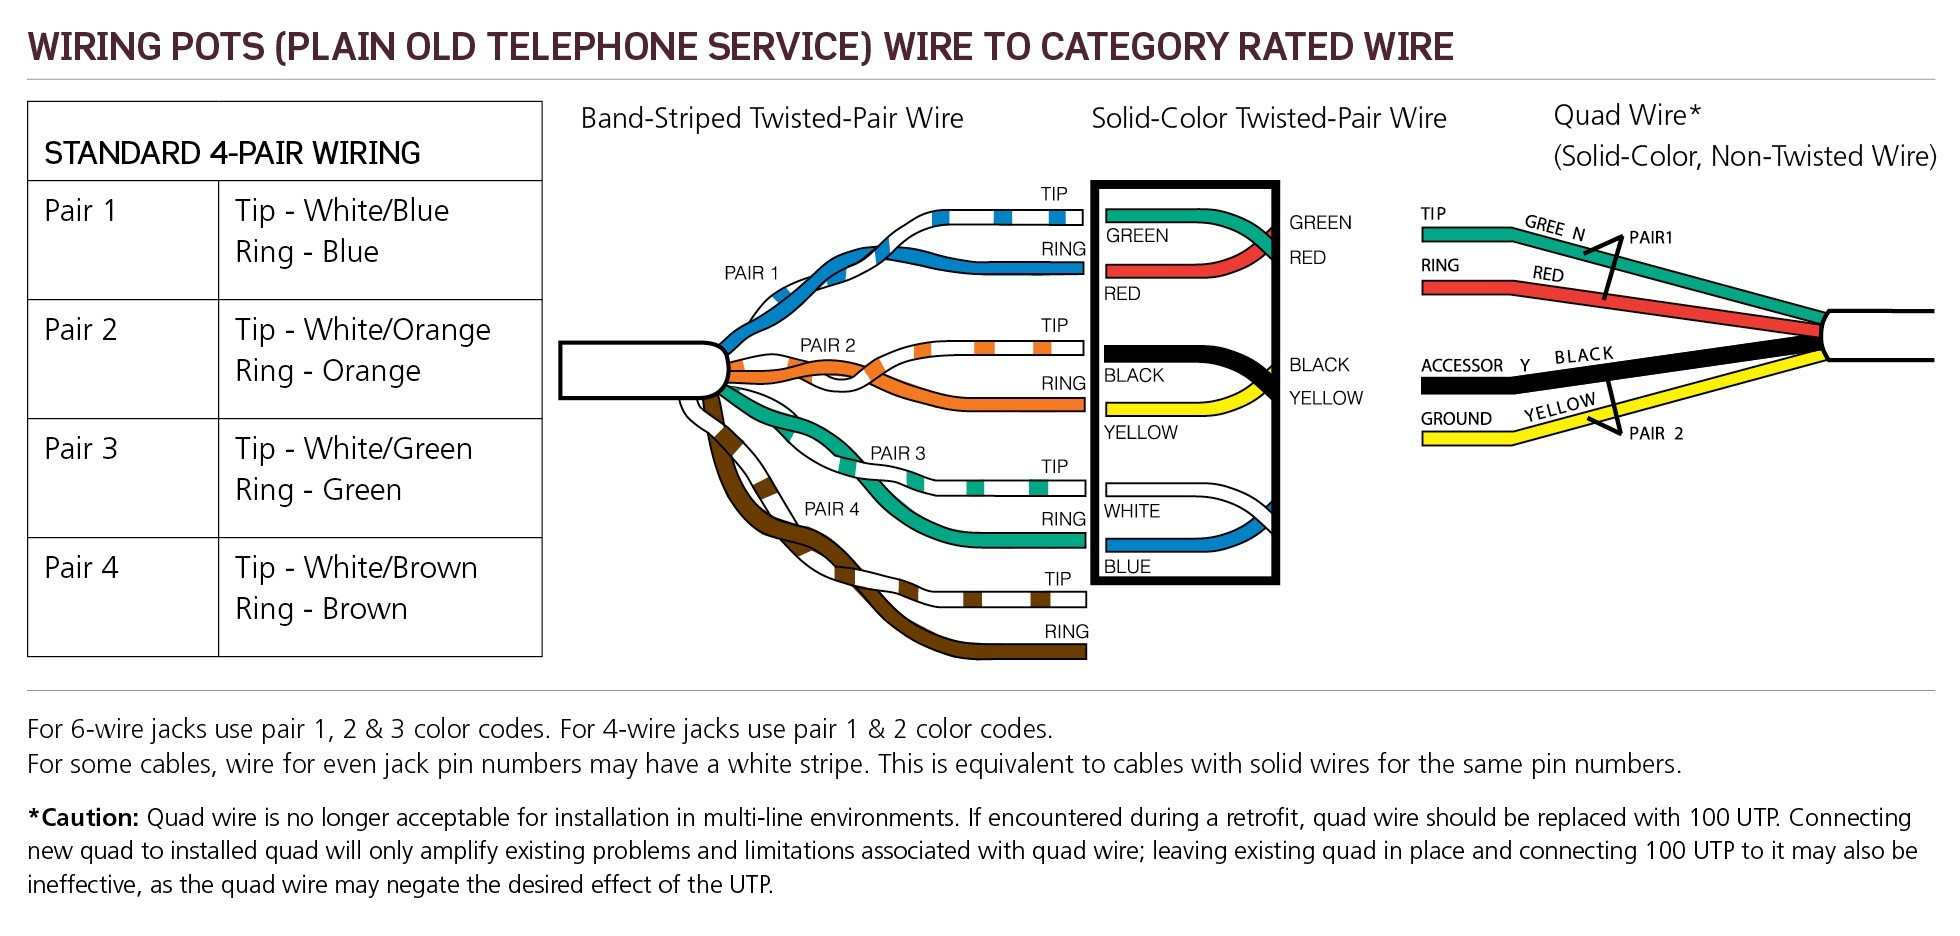 diagram in addition cat 5 phone wiring color code on telephone dsl rh  sellfie co Connecting Cat5 Wires Cat5 Wire Order